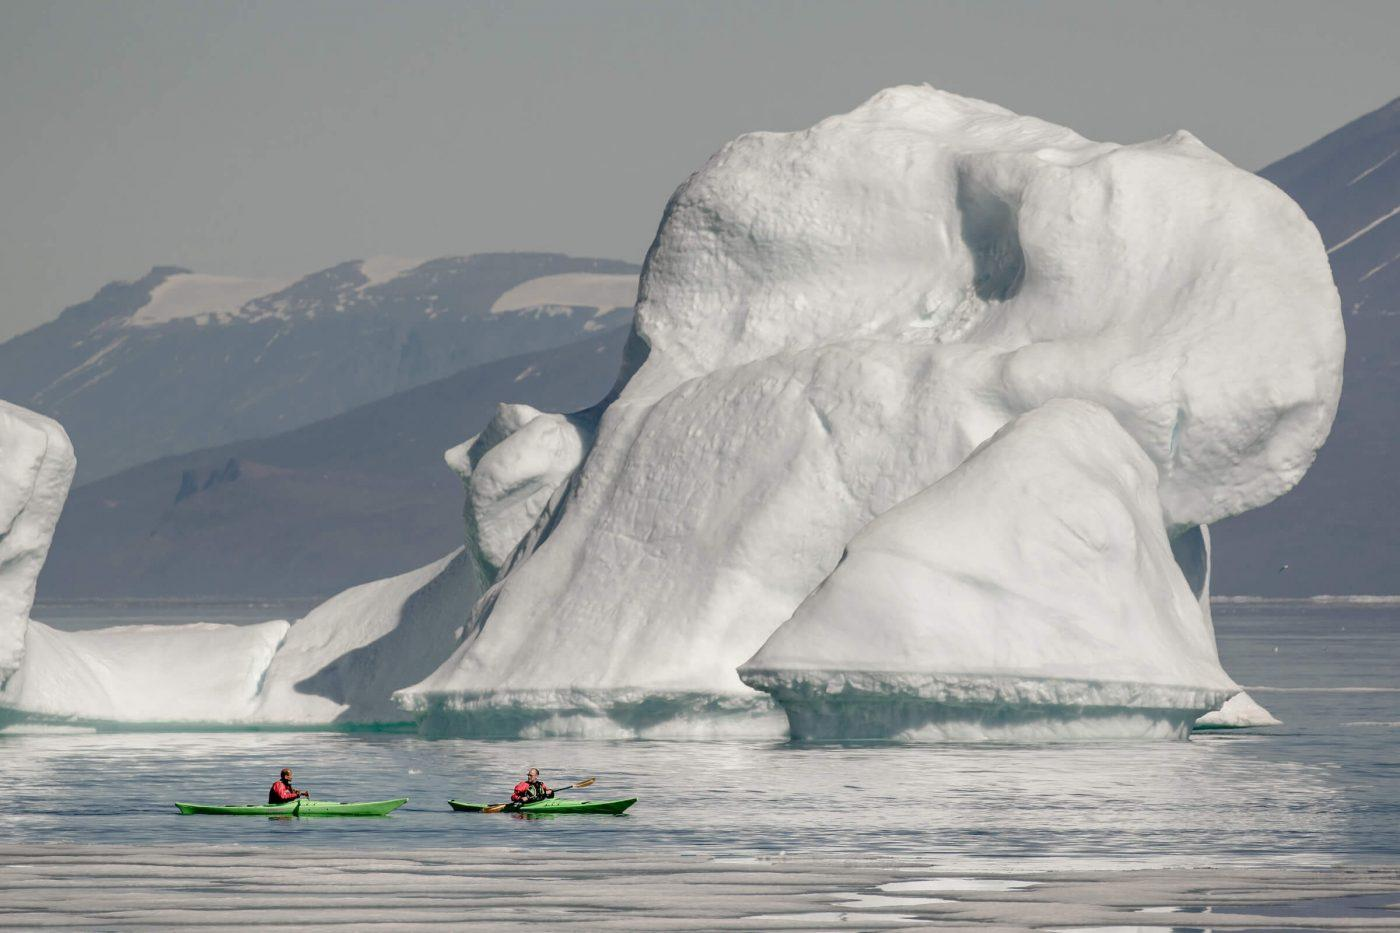 The Greenlandic Kayak